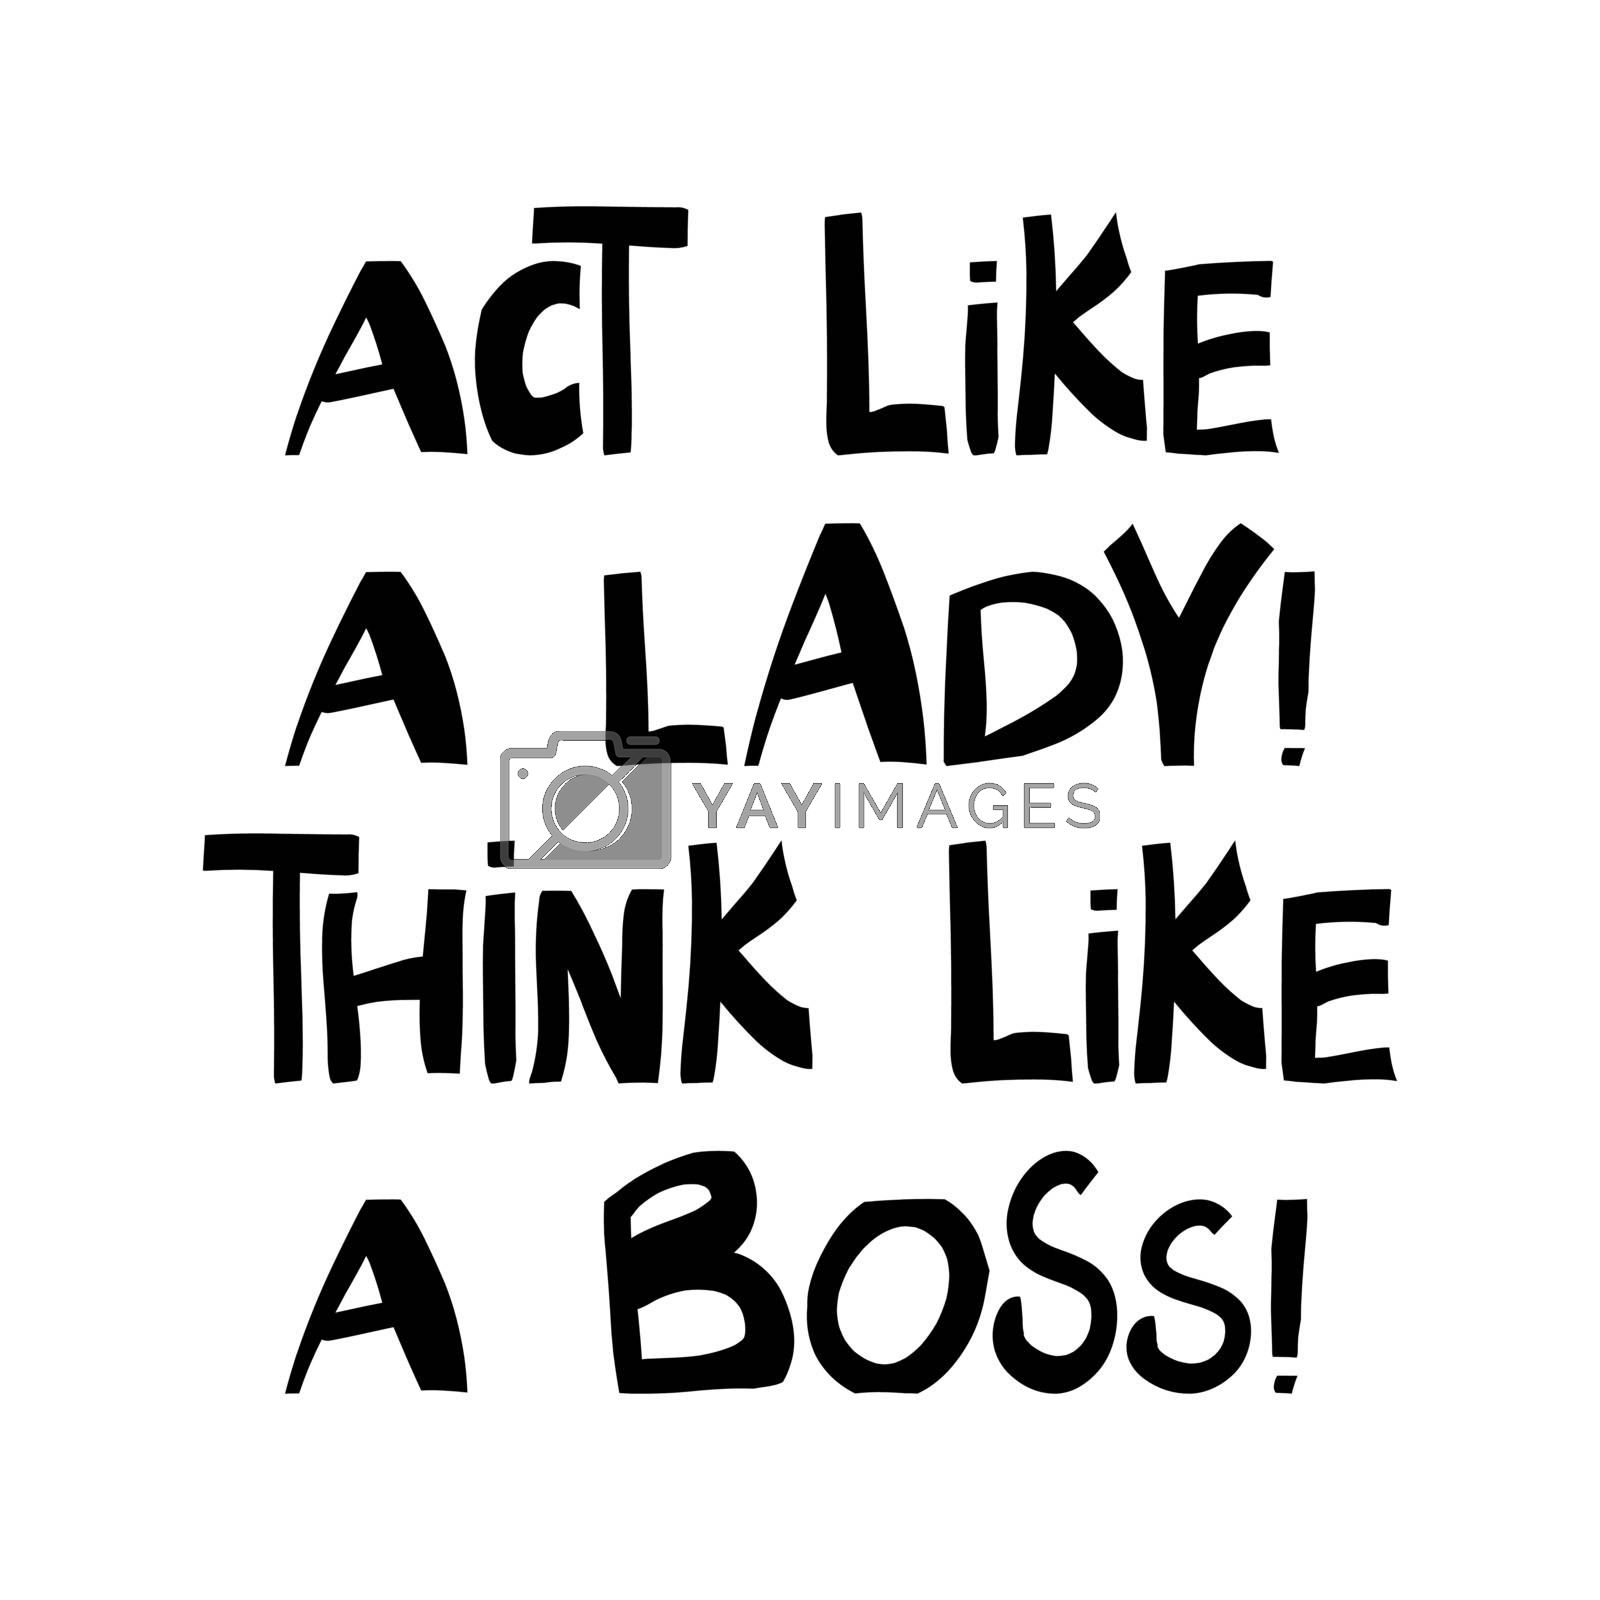 Act like a lady, think like a boss. Cute hand drawn lettering in modern scandinavian style. Isolated on white background. Vector stock illustration.